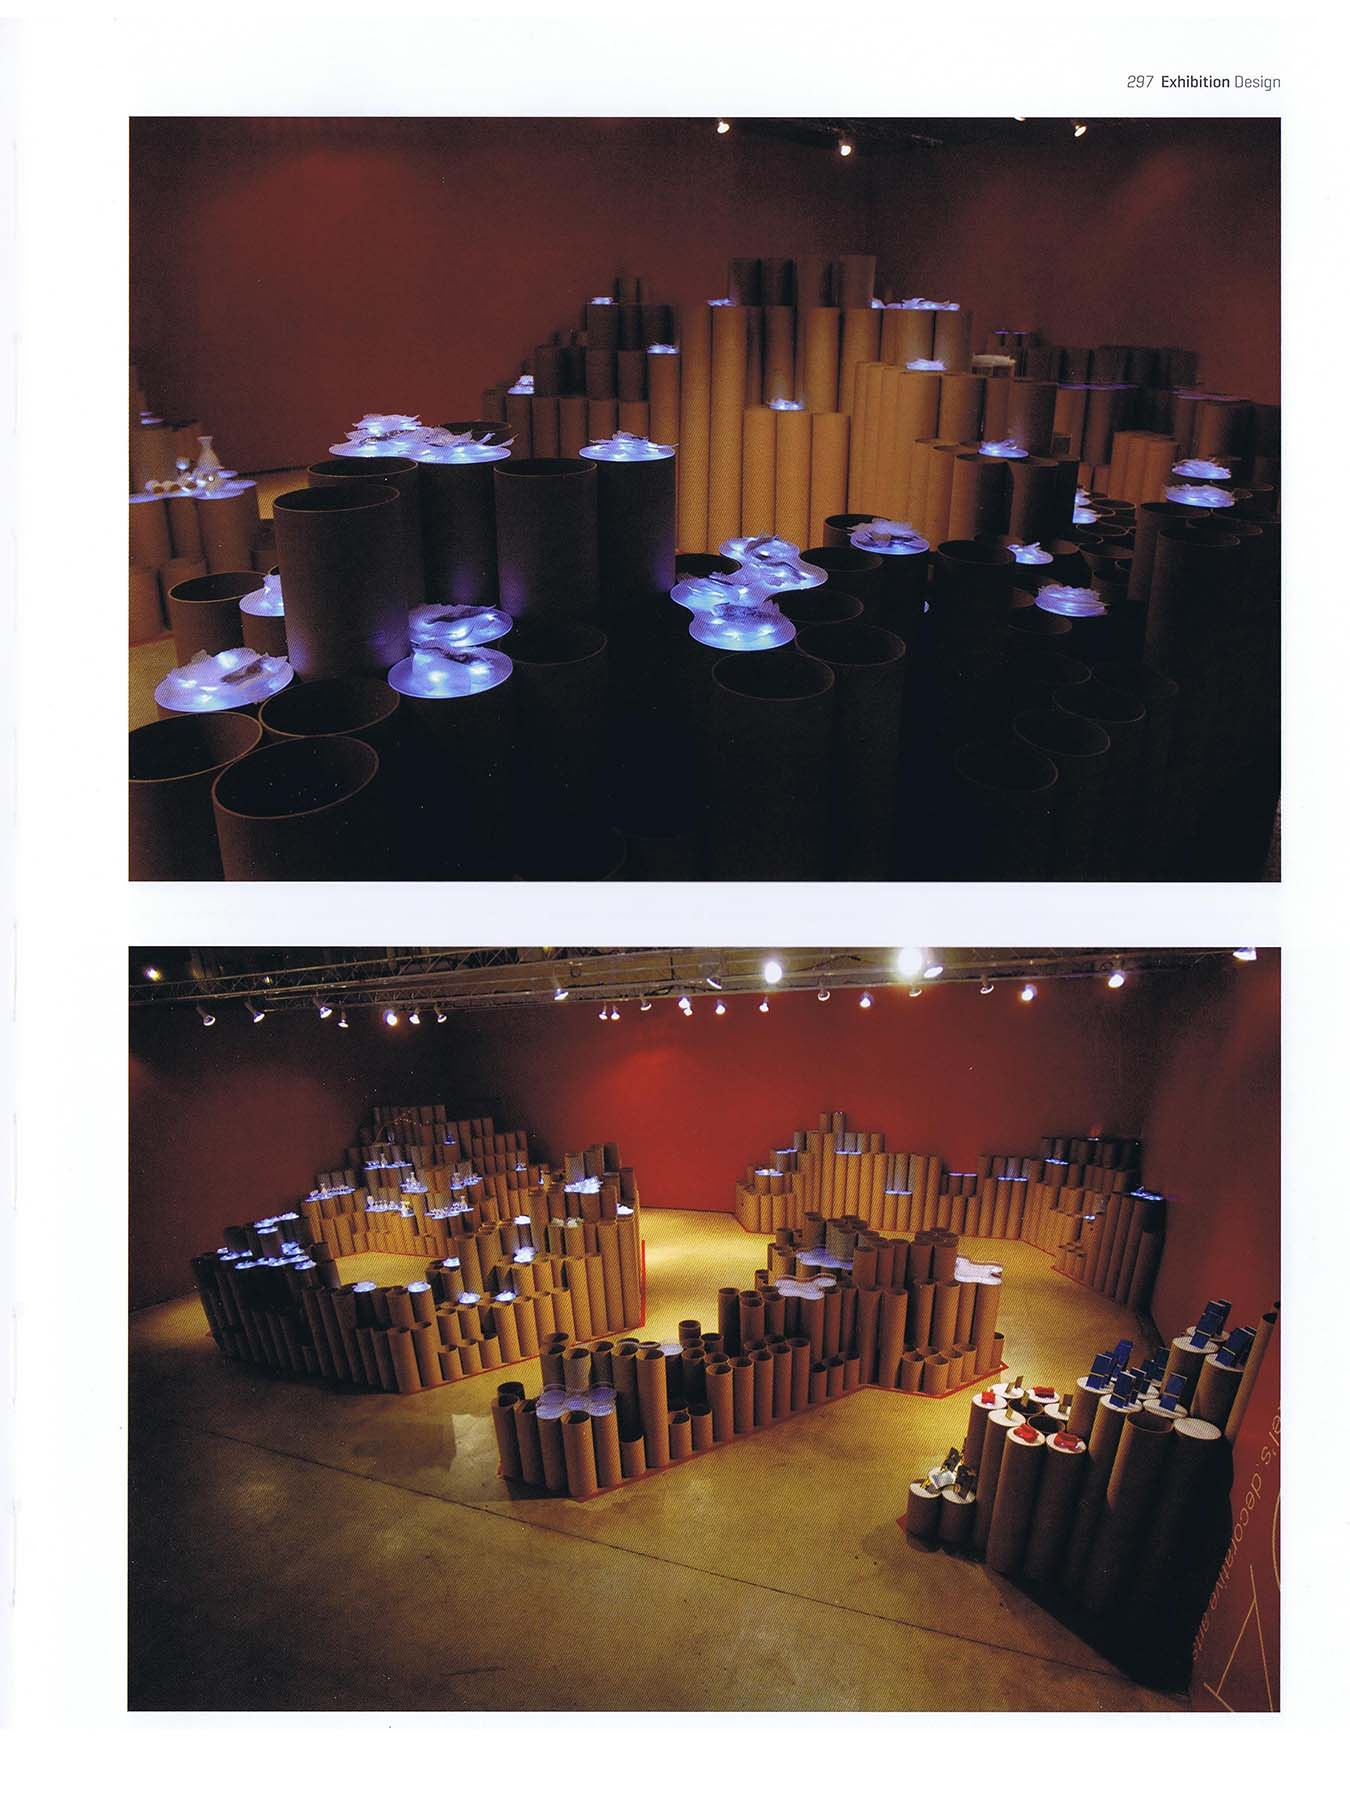 2010_Exhibition Design_Cardboard Figures_05